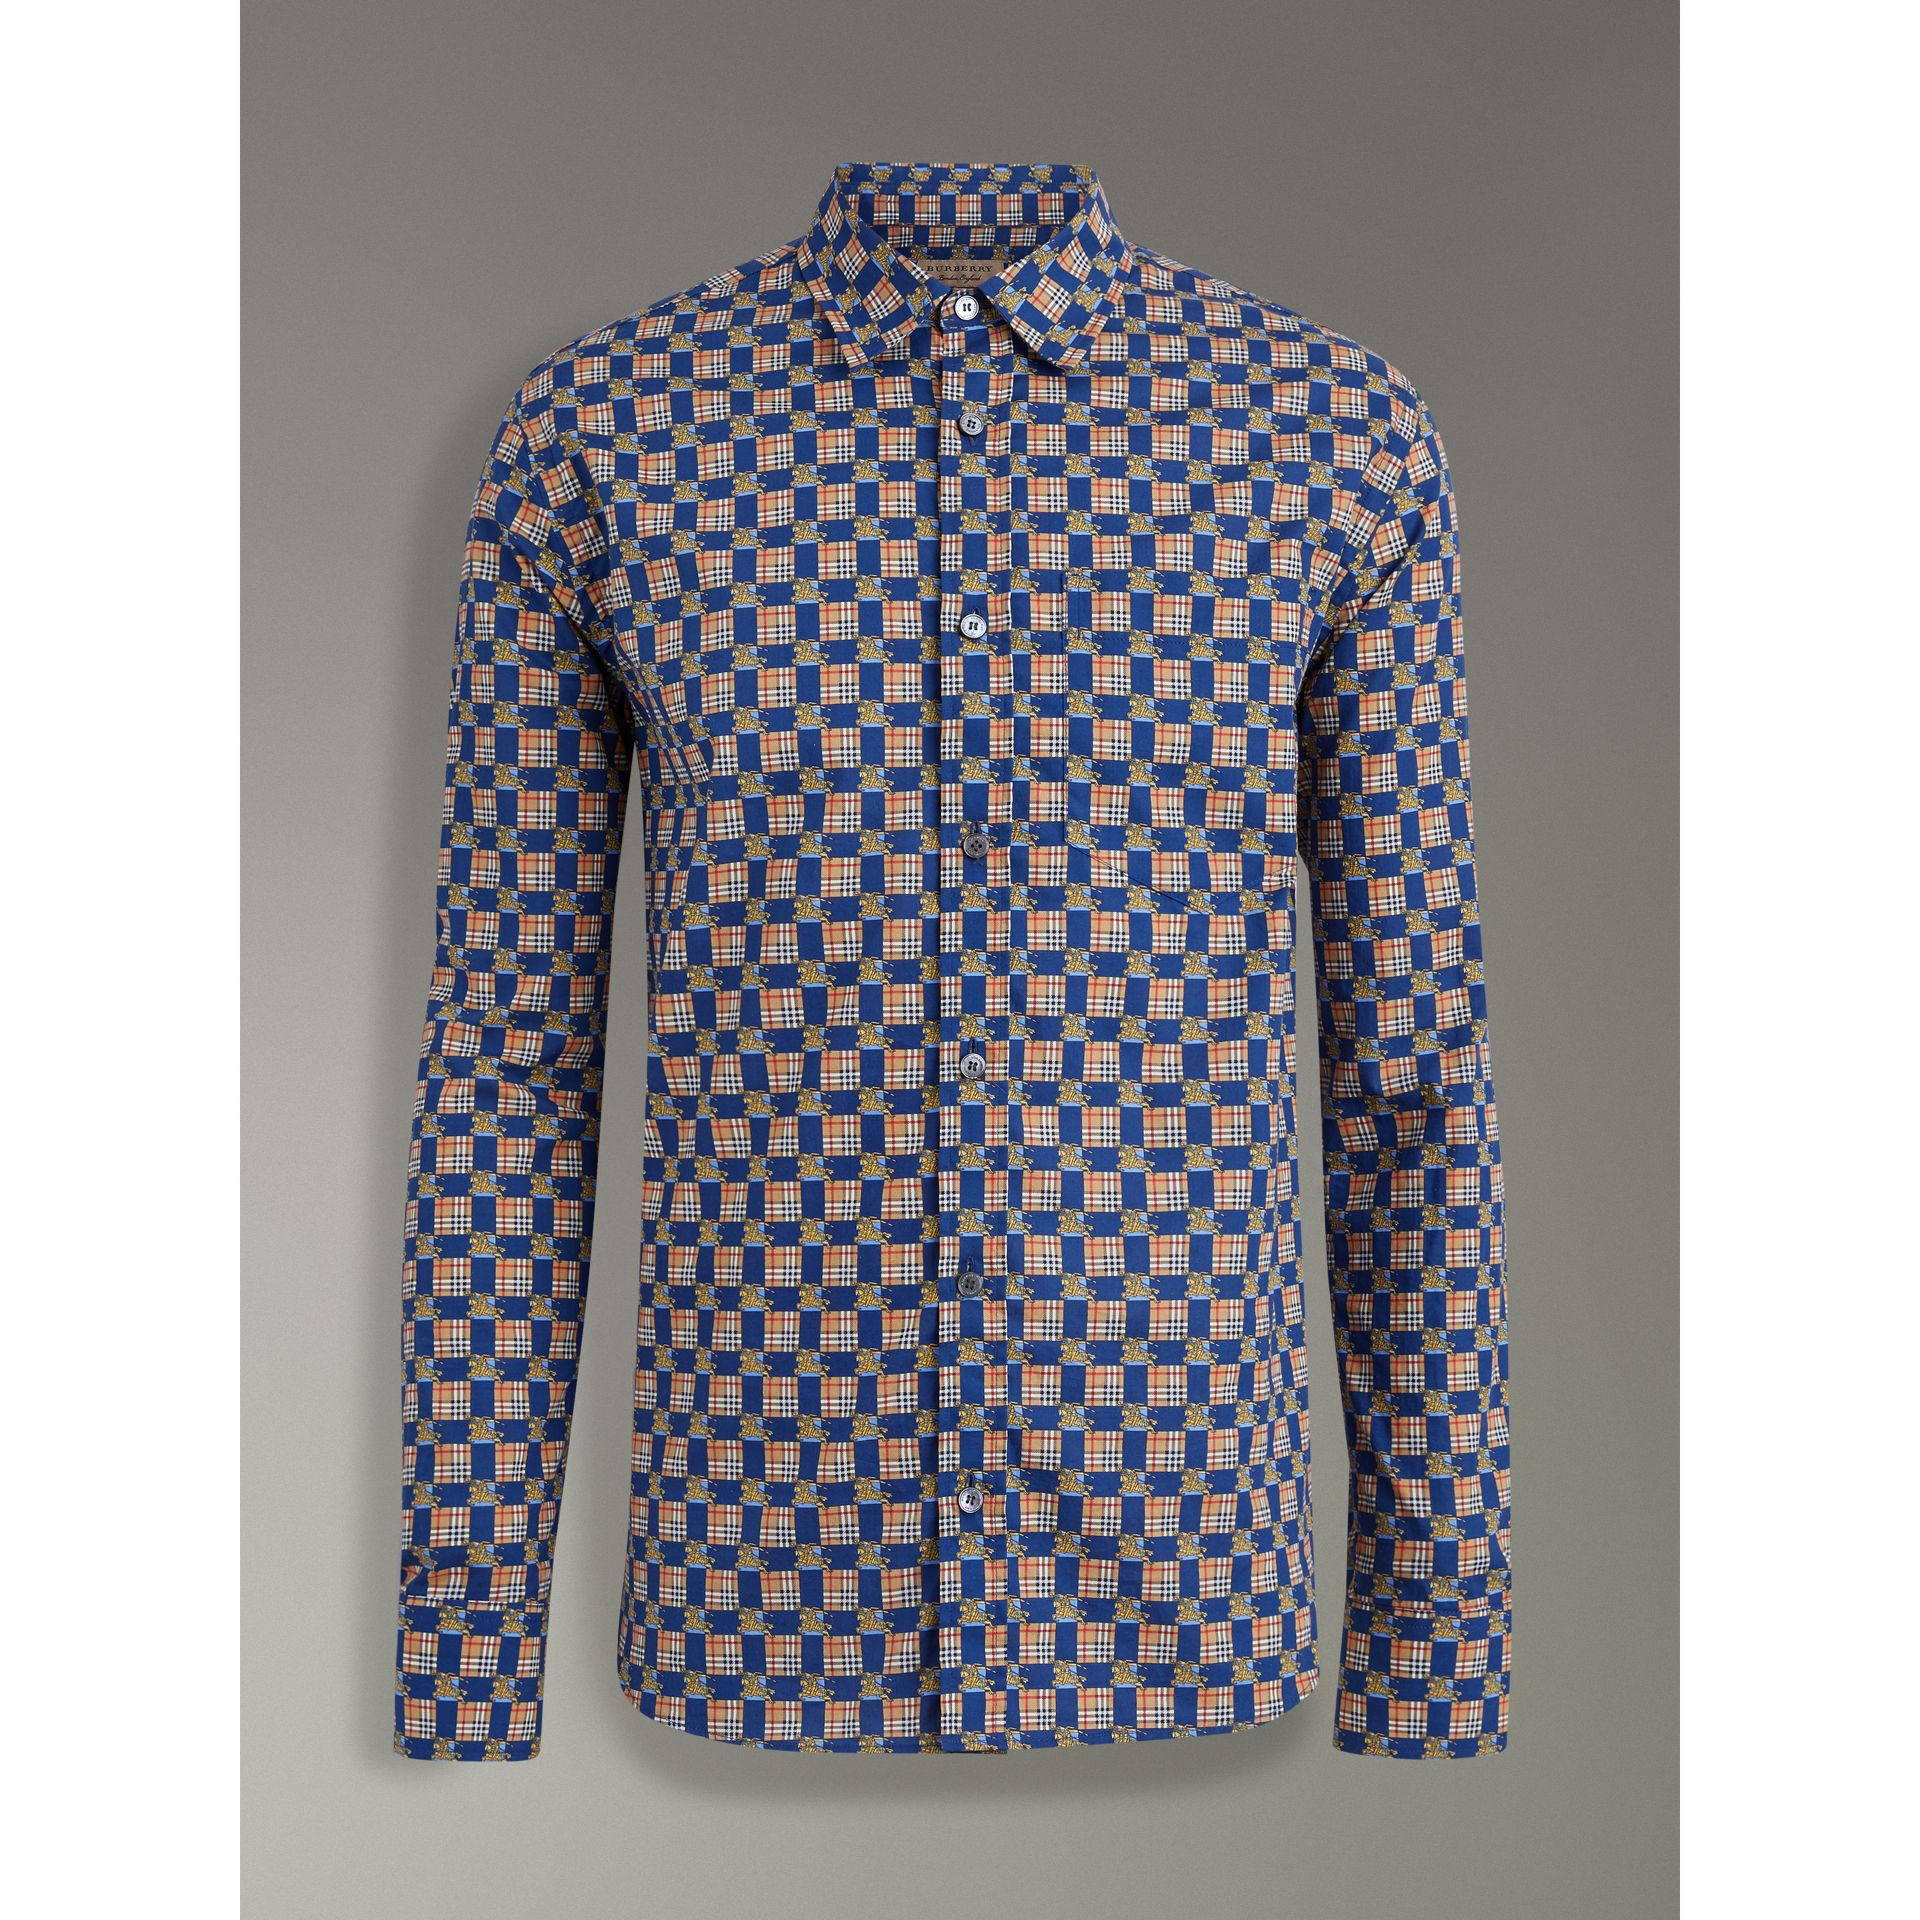 Tiled Archive Print Cotton Shirt in Navy - Men | Burberry - gallery image 3